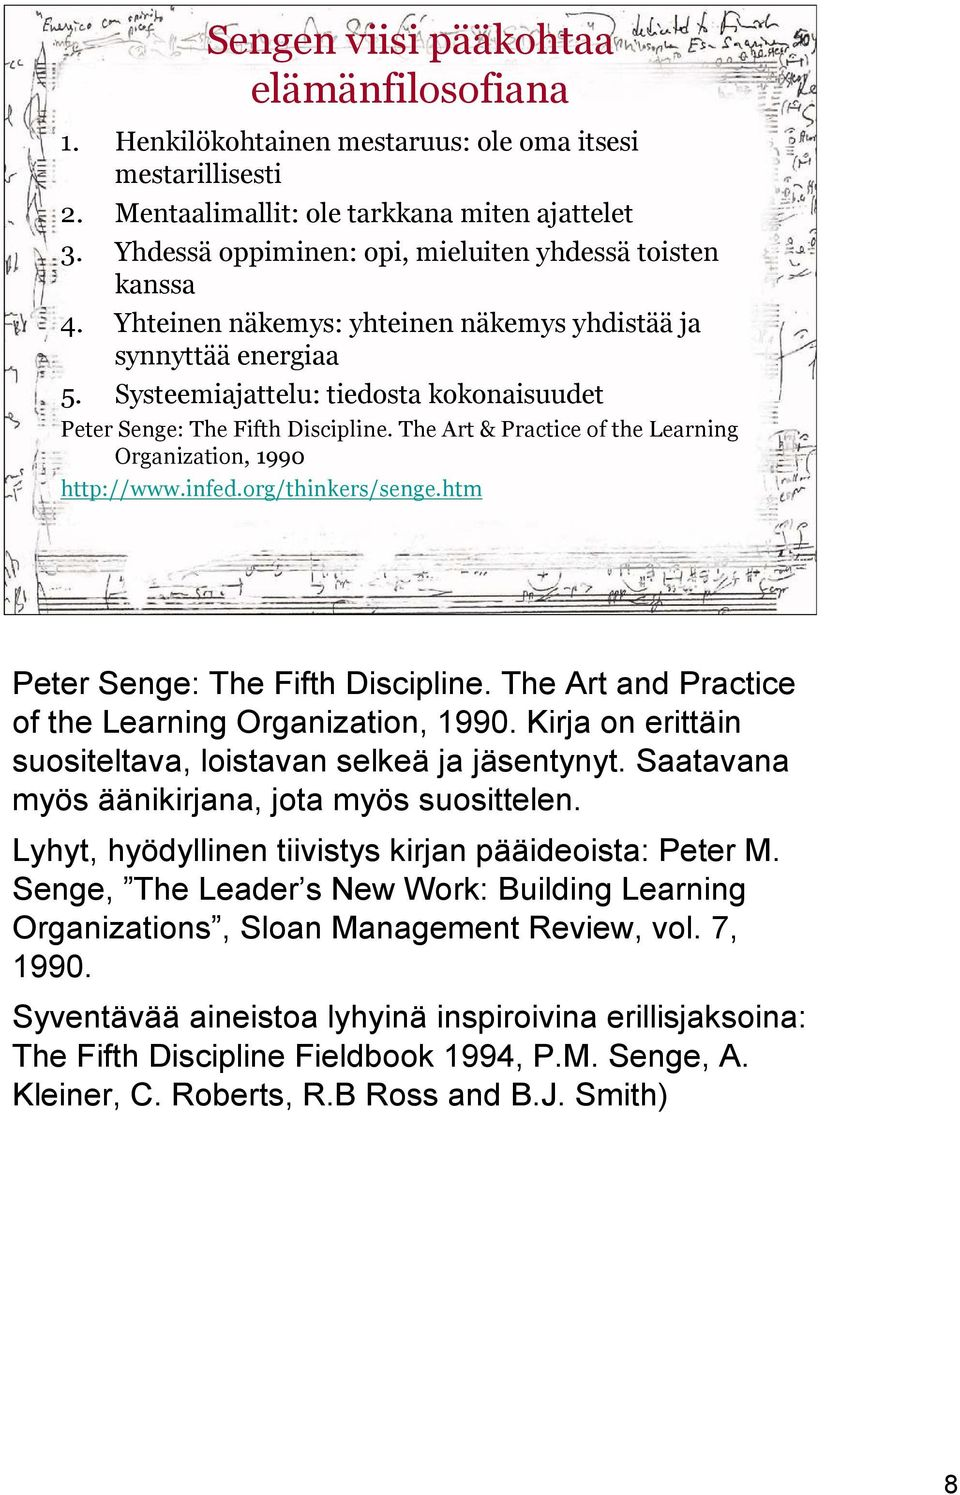 Systeemiajattelu: tiedosta kokonaisuudet Peter Senge: The Fifth Discipline. The Art & Practice of the Learning Organization, 1990 http://www.infed.org/thinkers/senge.